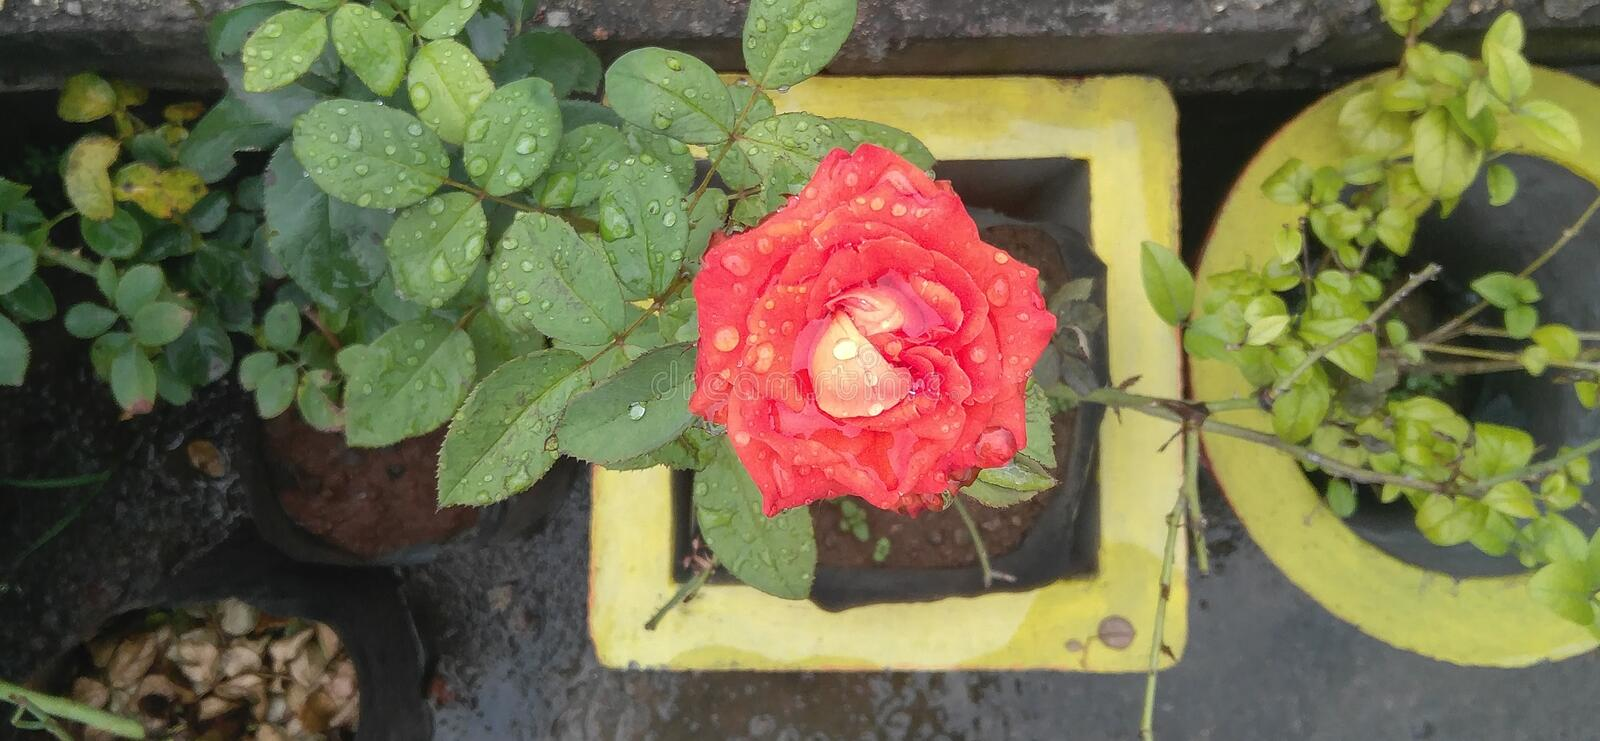 Rain drops in orange Pink moss rose flower plant growing in yellow flower pots in the garden isolated background royalty free stock images